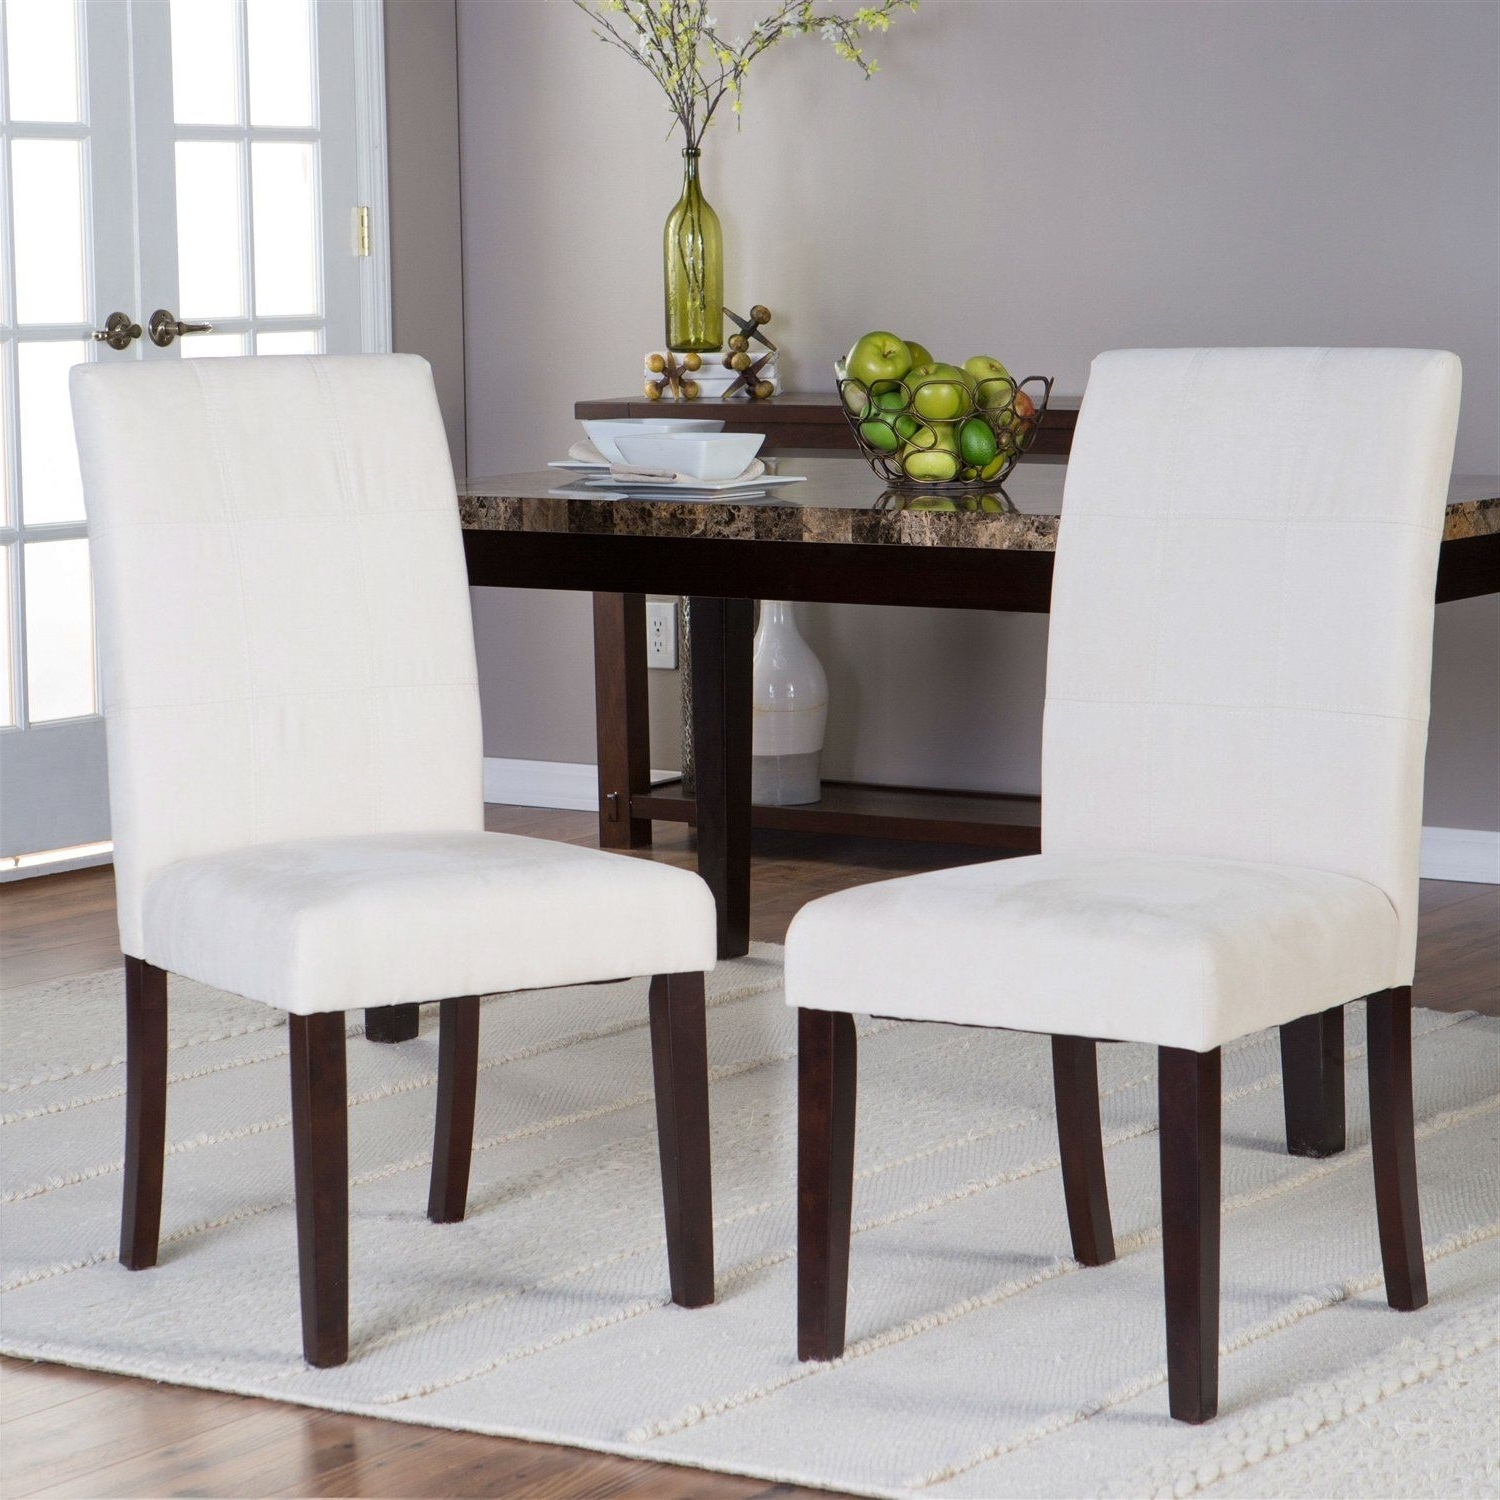 Palazzo 3 Piece Dining Table Sets Regarding 2017 Set Of 2 Light Beige Padded Microfiber Dining Chairs (View 22 of 25)